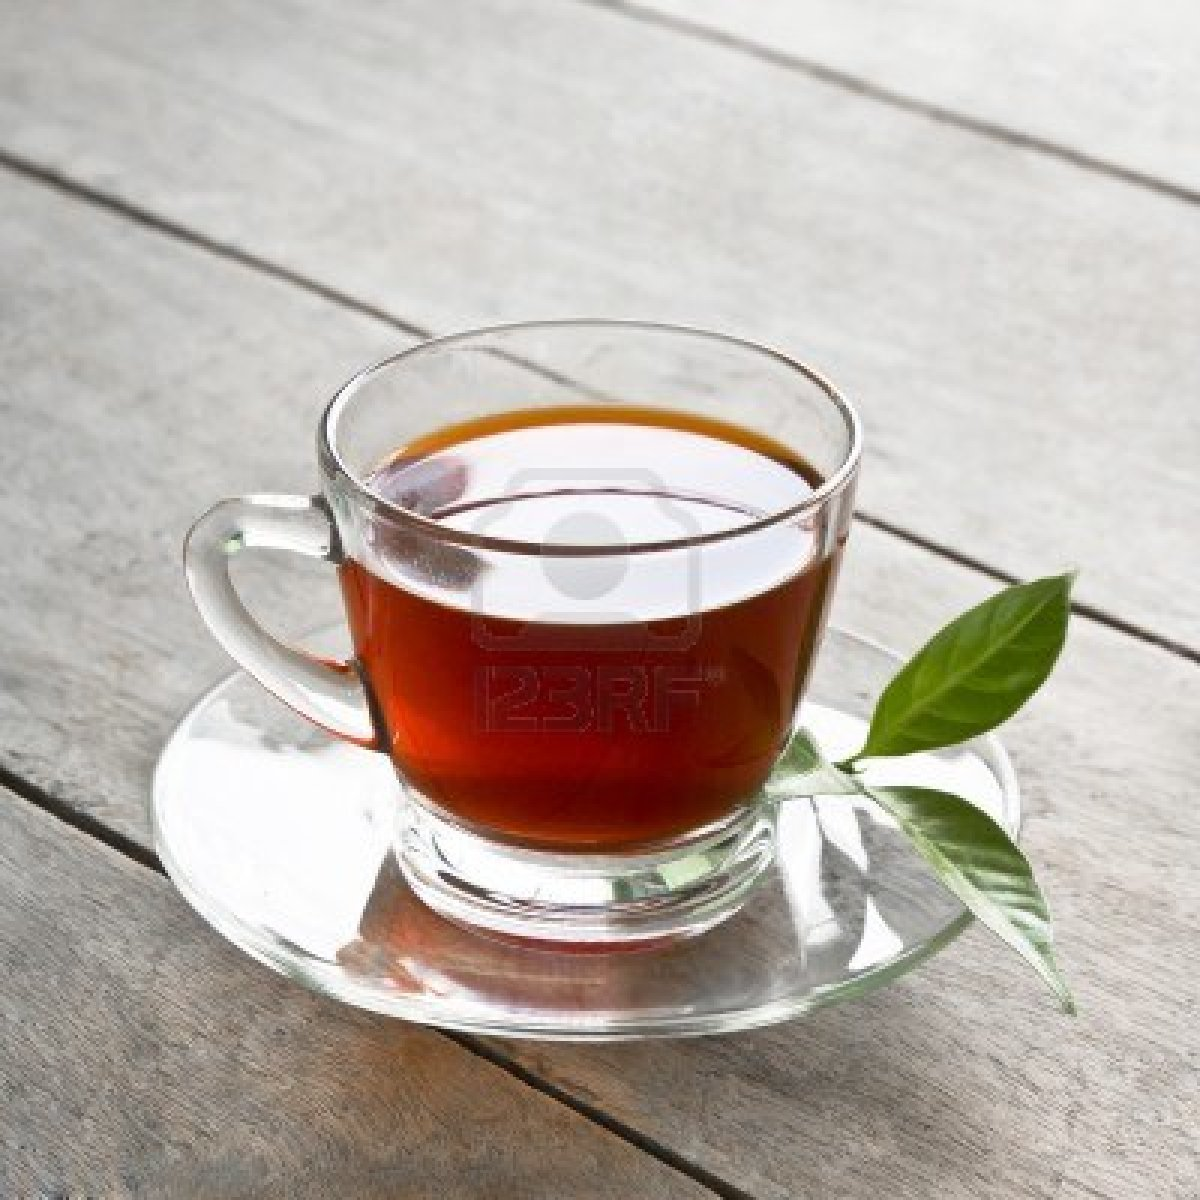 15548950-a-cup-of-tea-on-wood-board-drink-for-health